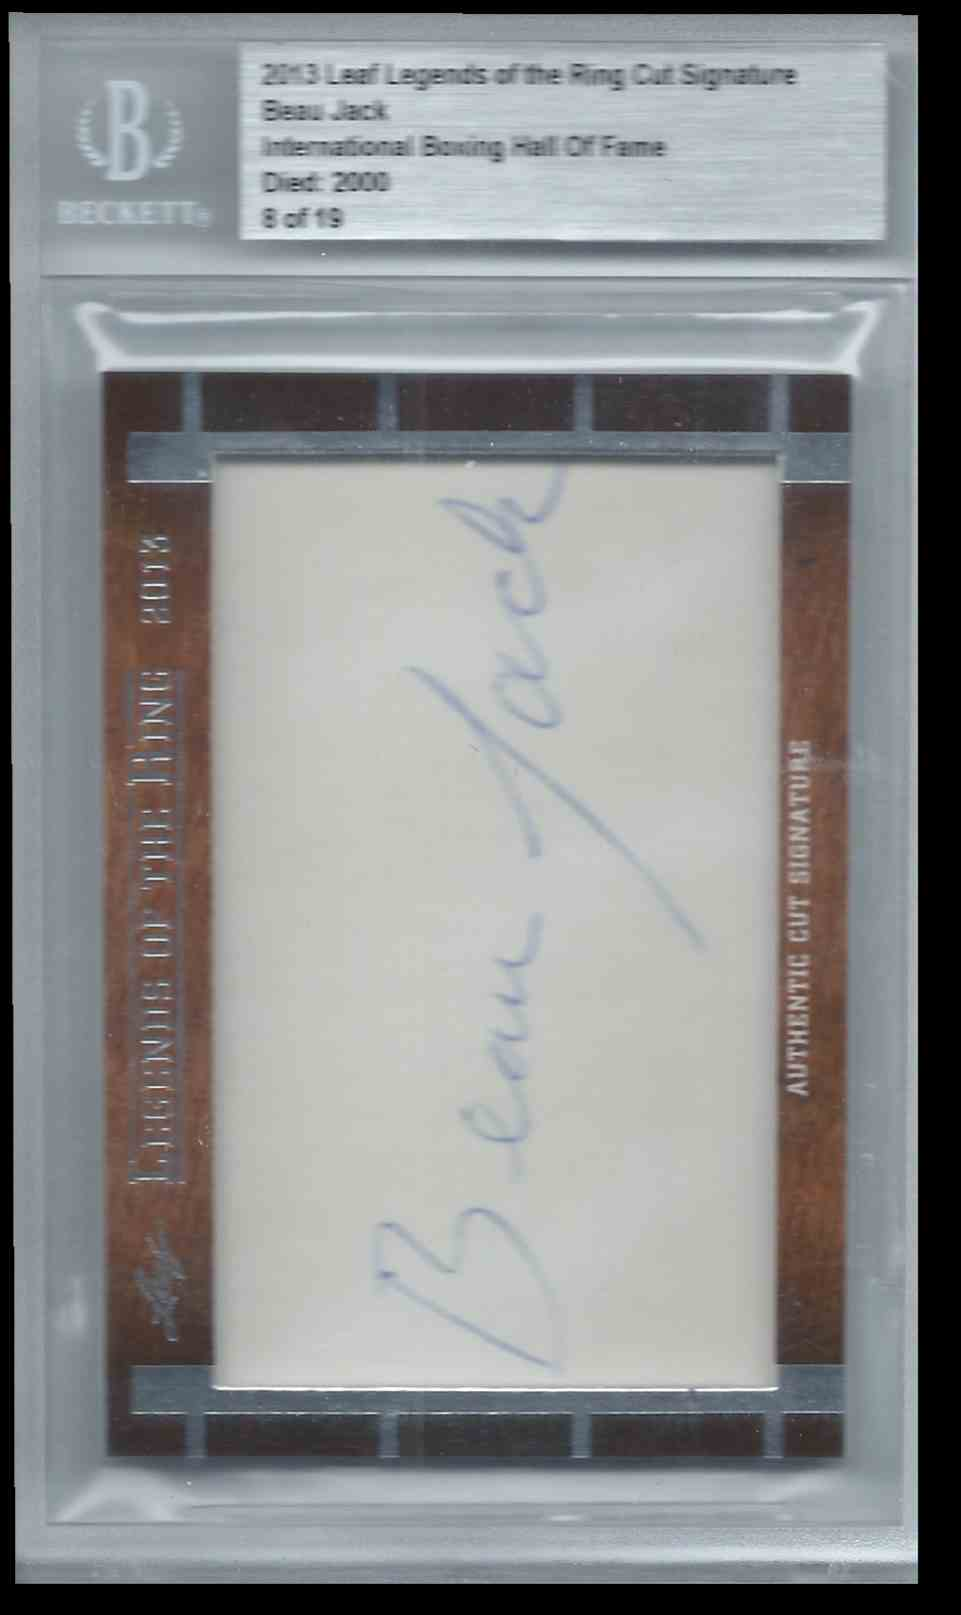 2013 Leaf Legends Of The Ring Cut Signature Edition Boxing Hall Of Fame Beau Jack #CUTBJ card front image